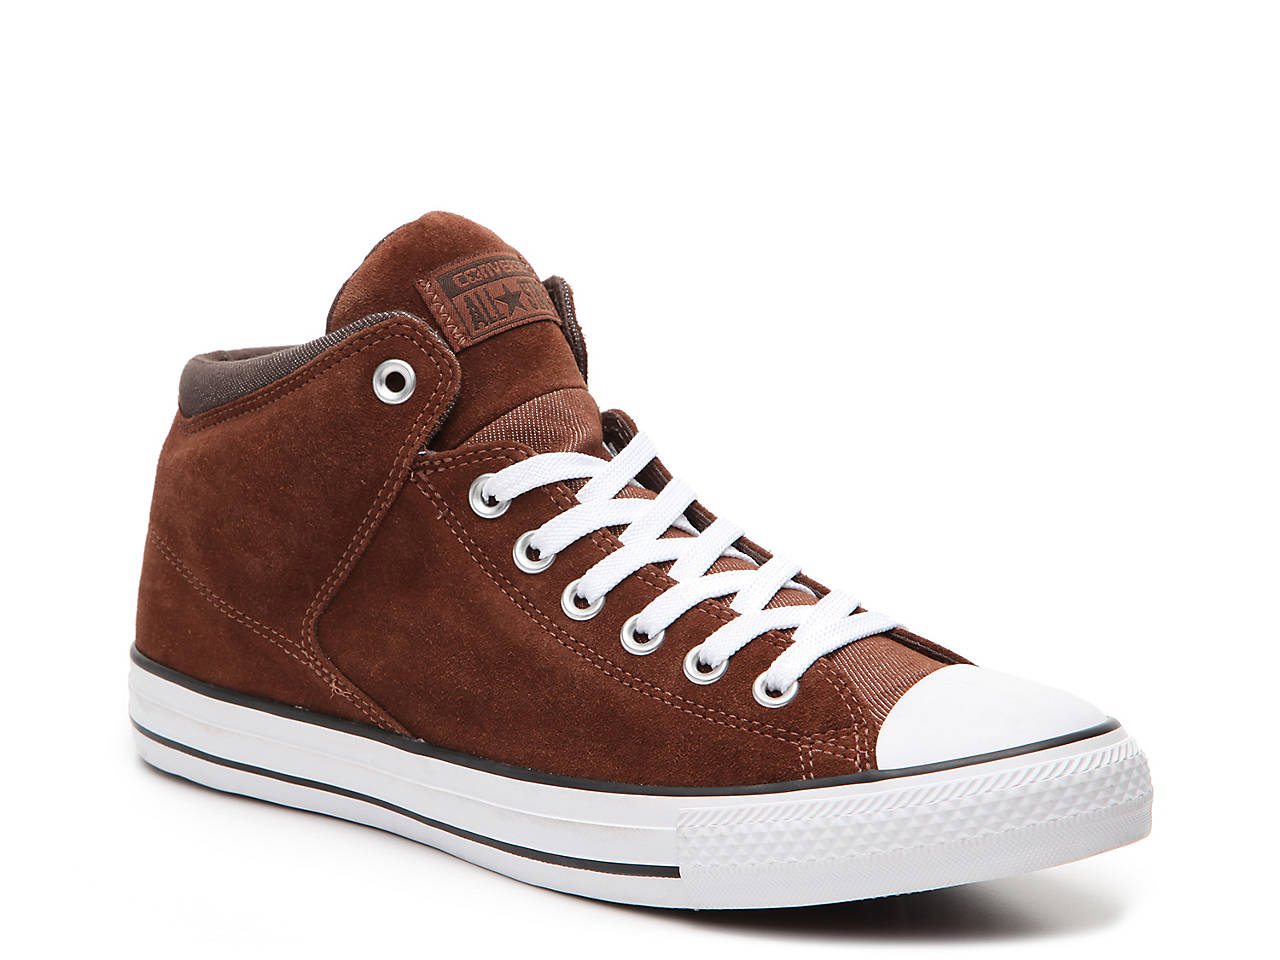 6d95f8aeb01e41 Converse. Chuck Taylor All Star Hi Street Thermal High-Top Sneaker - Men s